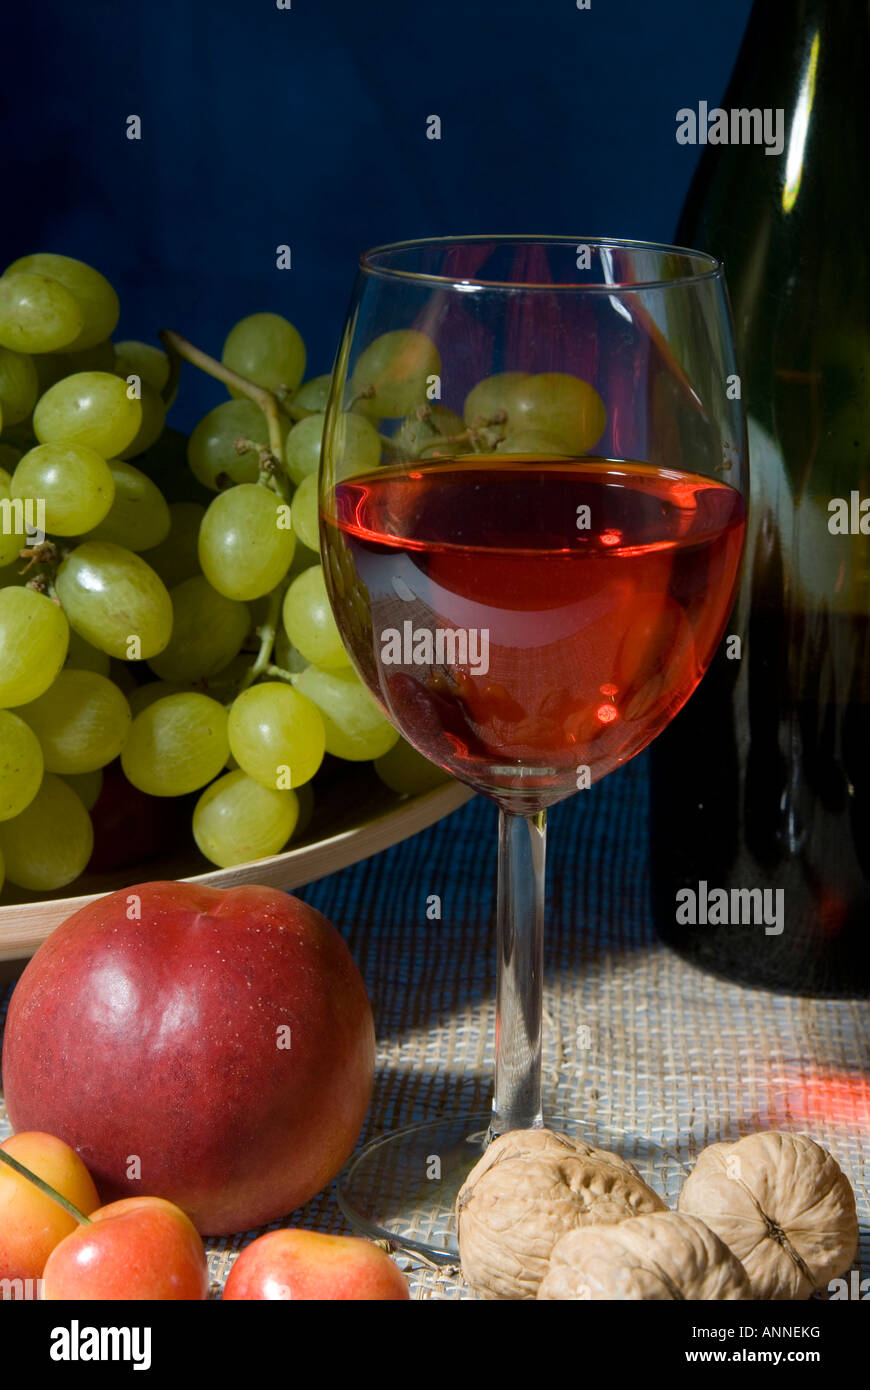 Classic still life featuring a colorful bowl of fruit and a wine bottle with a wineglasses on a black background - Stock Image